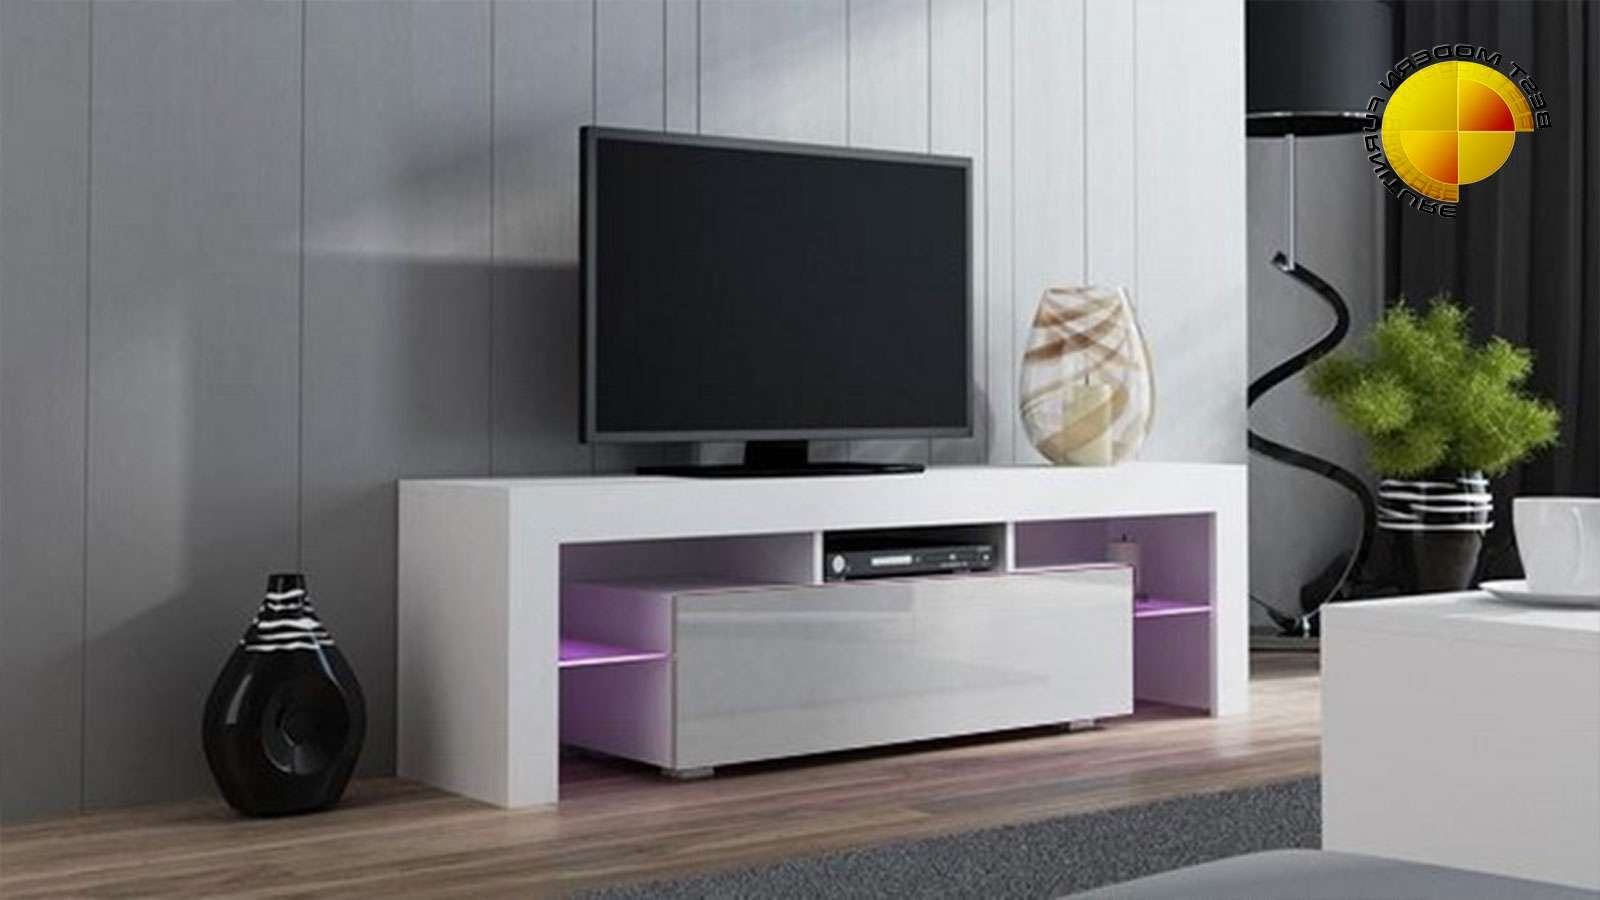 Modern Tv Stand 160Cm High Gloss Cabinet Rgb Led Lights White Unit Intended For Modern White Gloss Tv Stands (View 8 of 15)